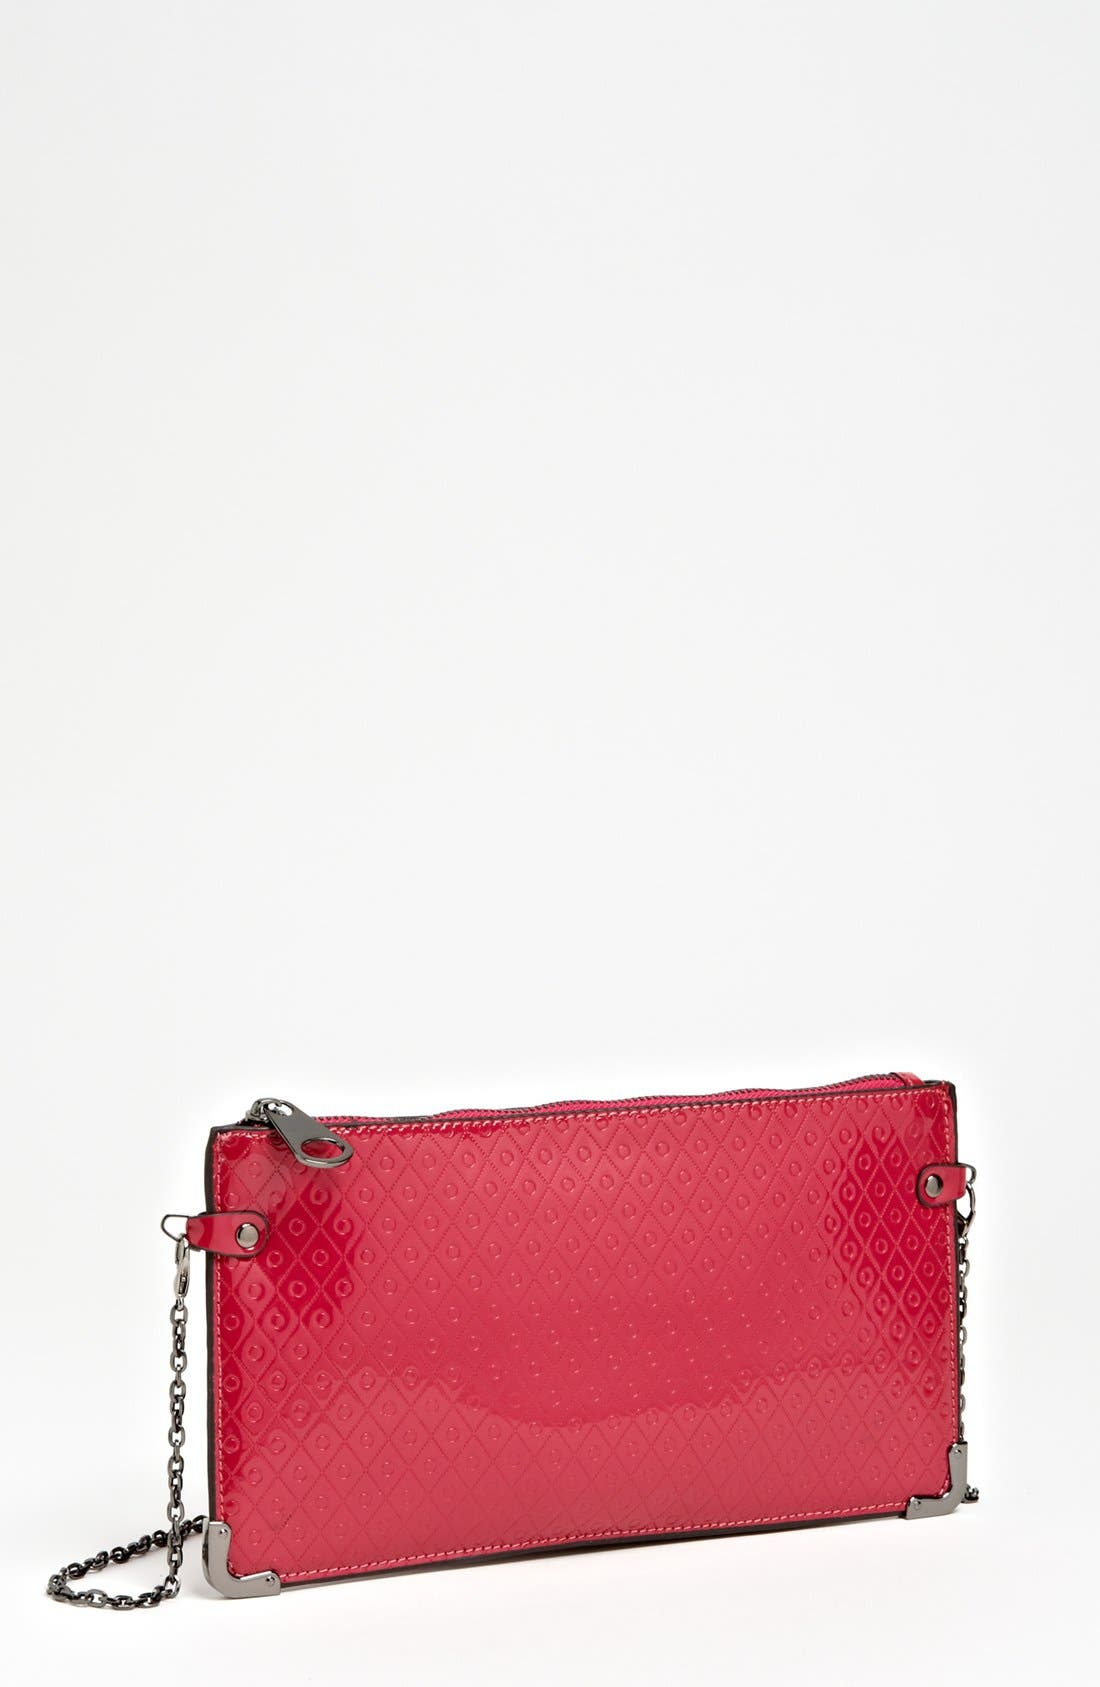 Alternate Image 1 Selected - POVERTY FLATS by rian Faux Leather Crossbody Clutch